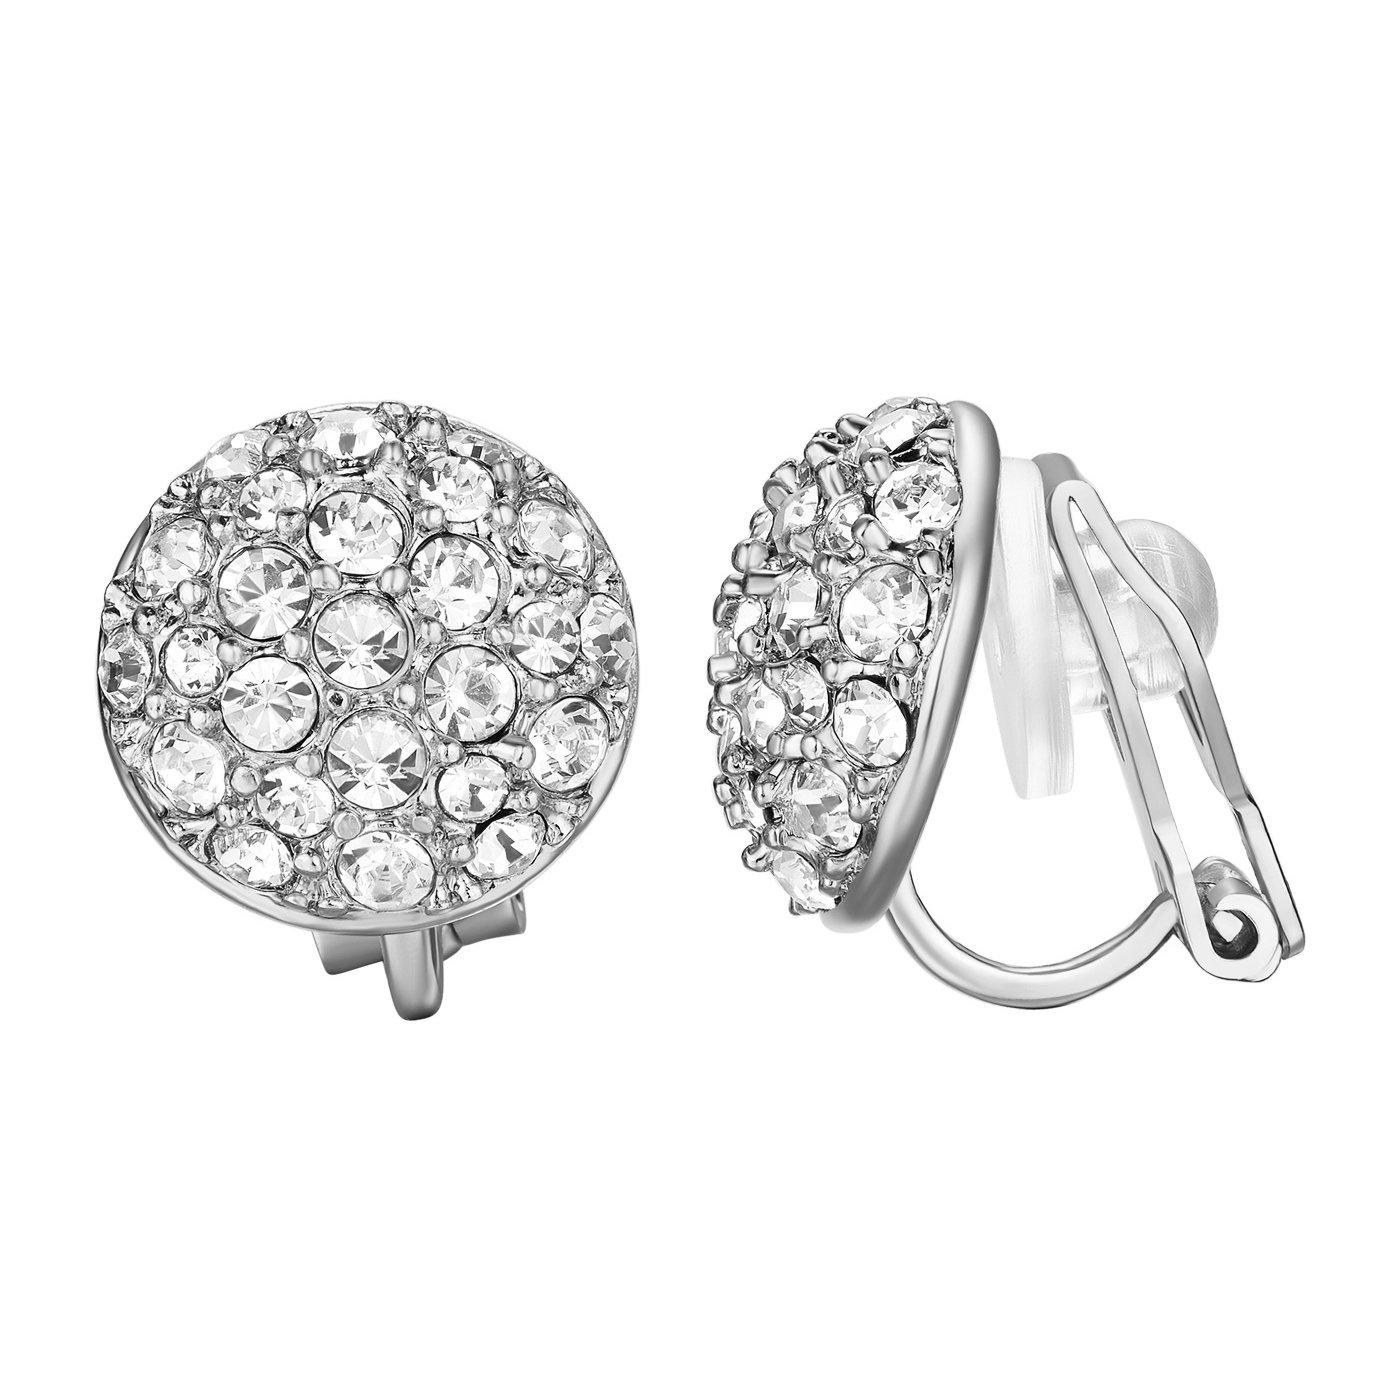 Yoursfs Clip On Earrings for Women 18K White Gold Plated Sparkle CZ Round Cocktail Earring Jewelry